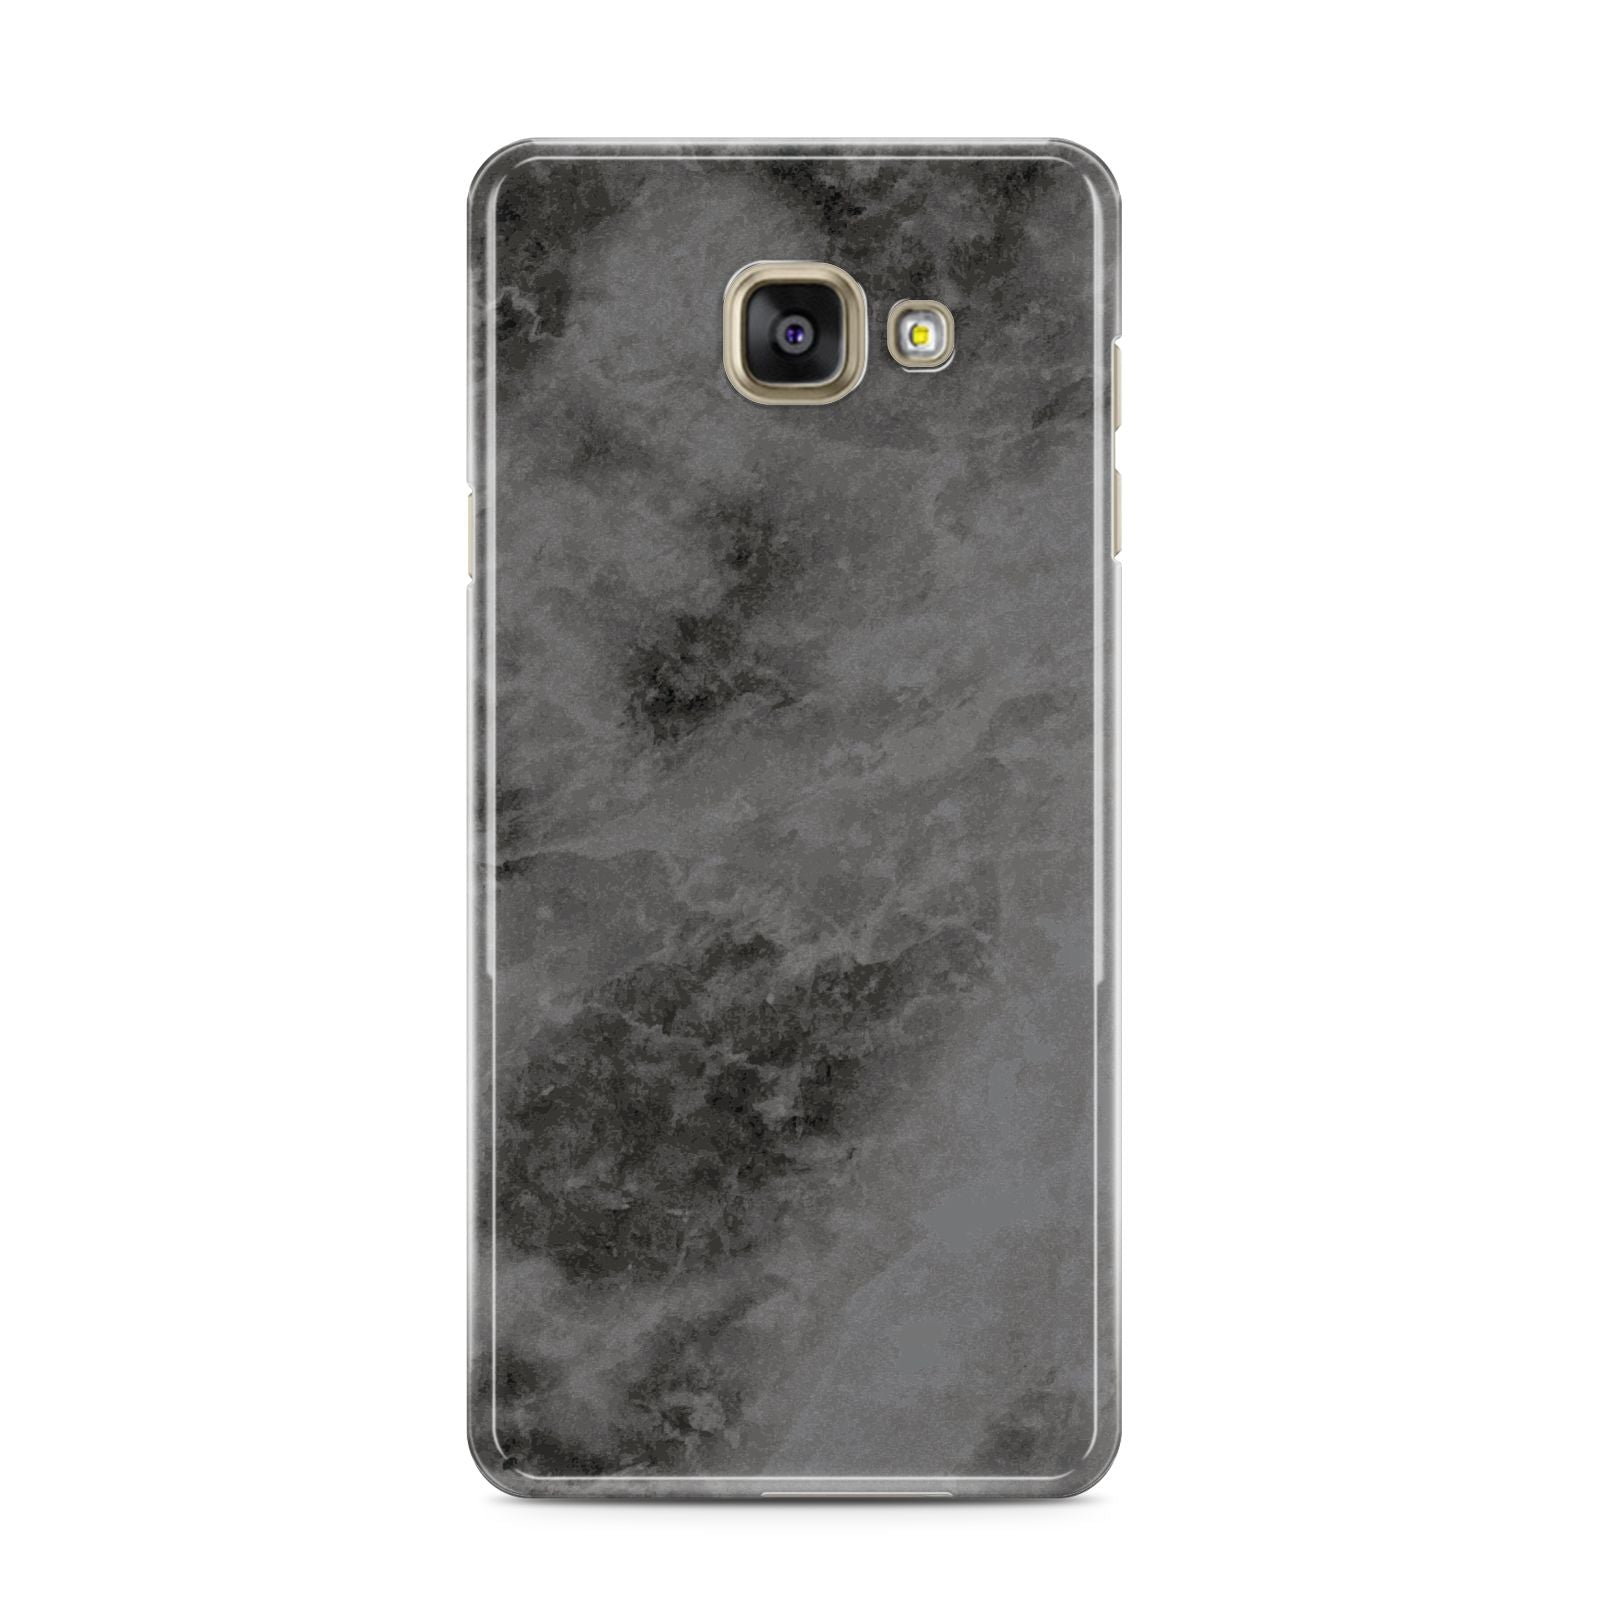 Faux Marble Grey Black Samsung Galaxy A3 2016 Case on gold phone